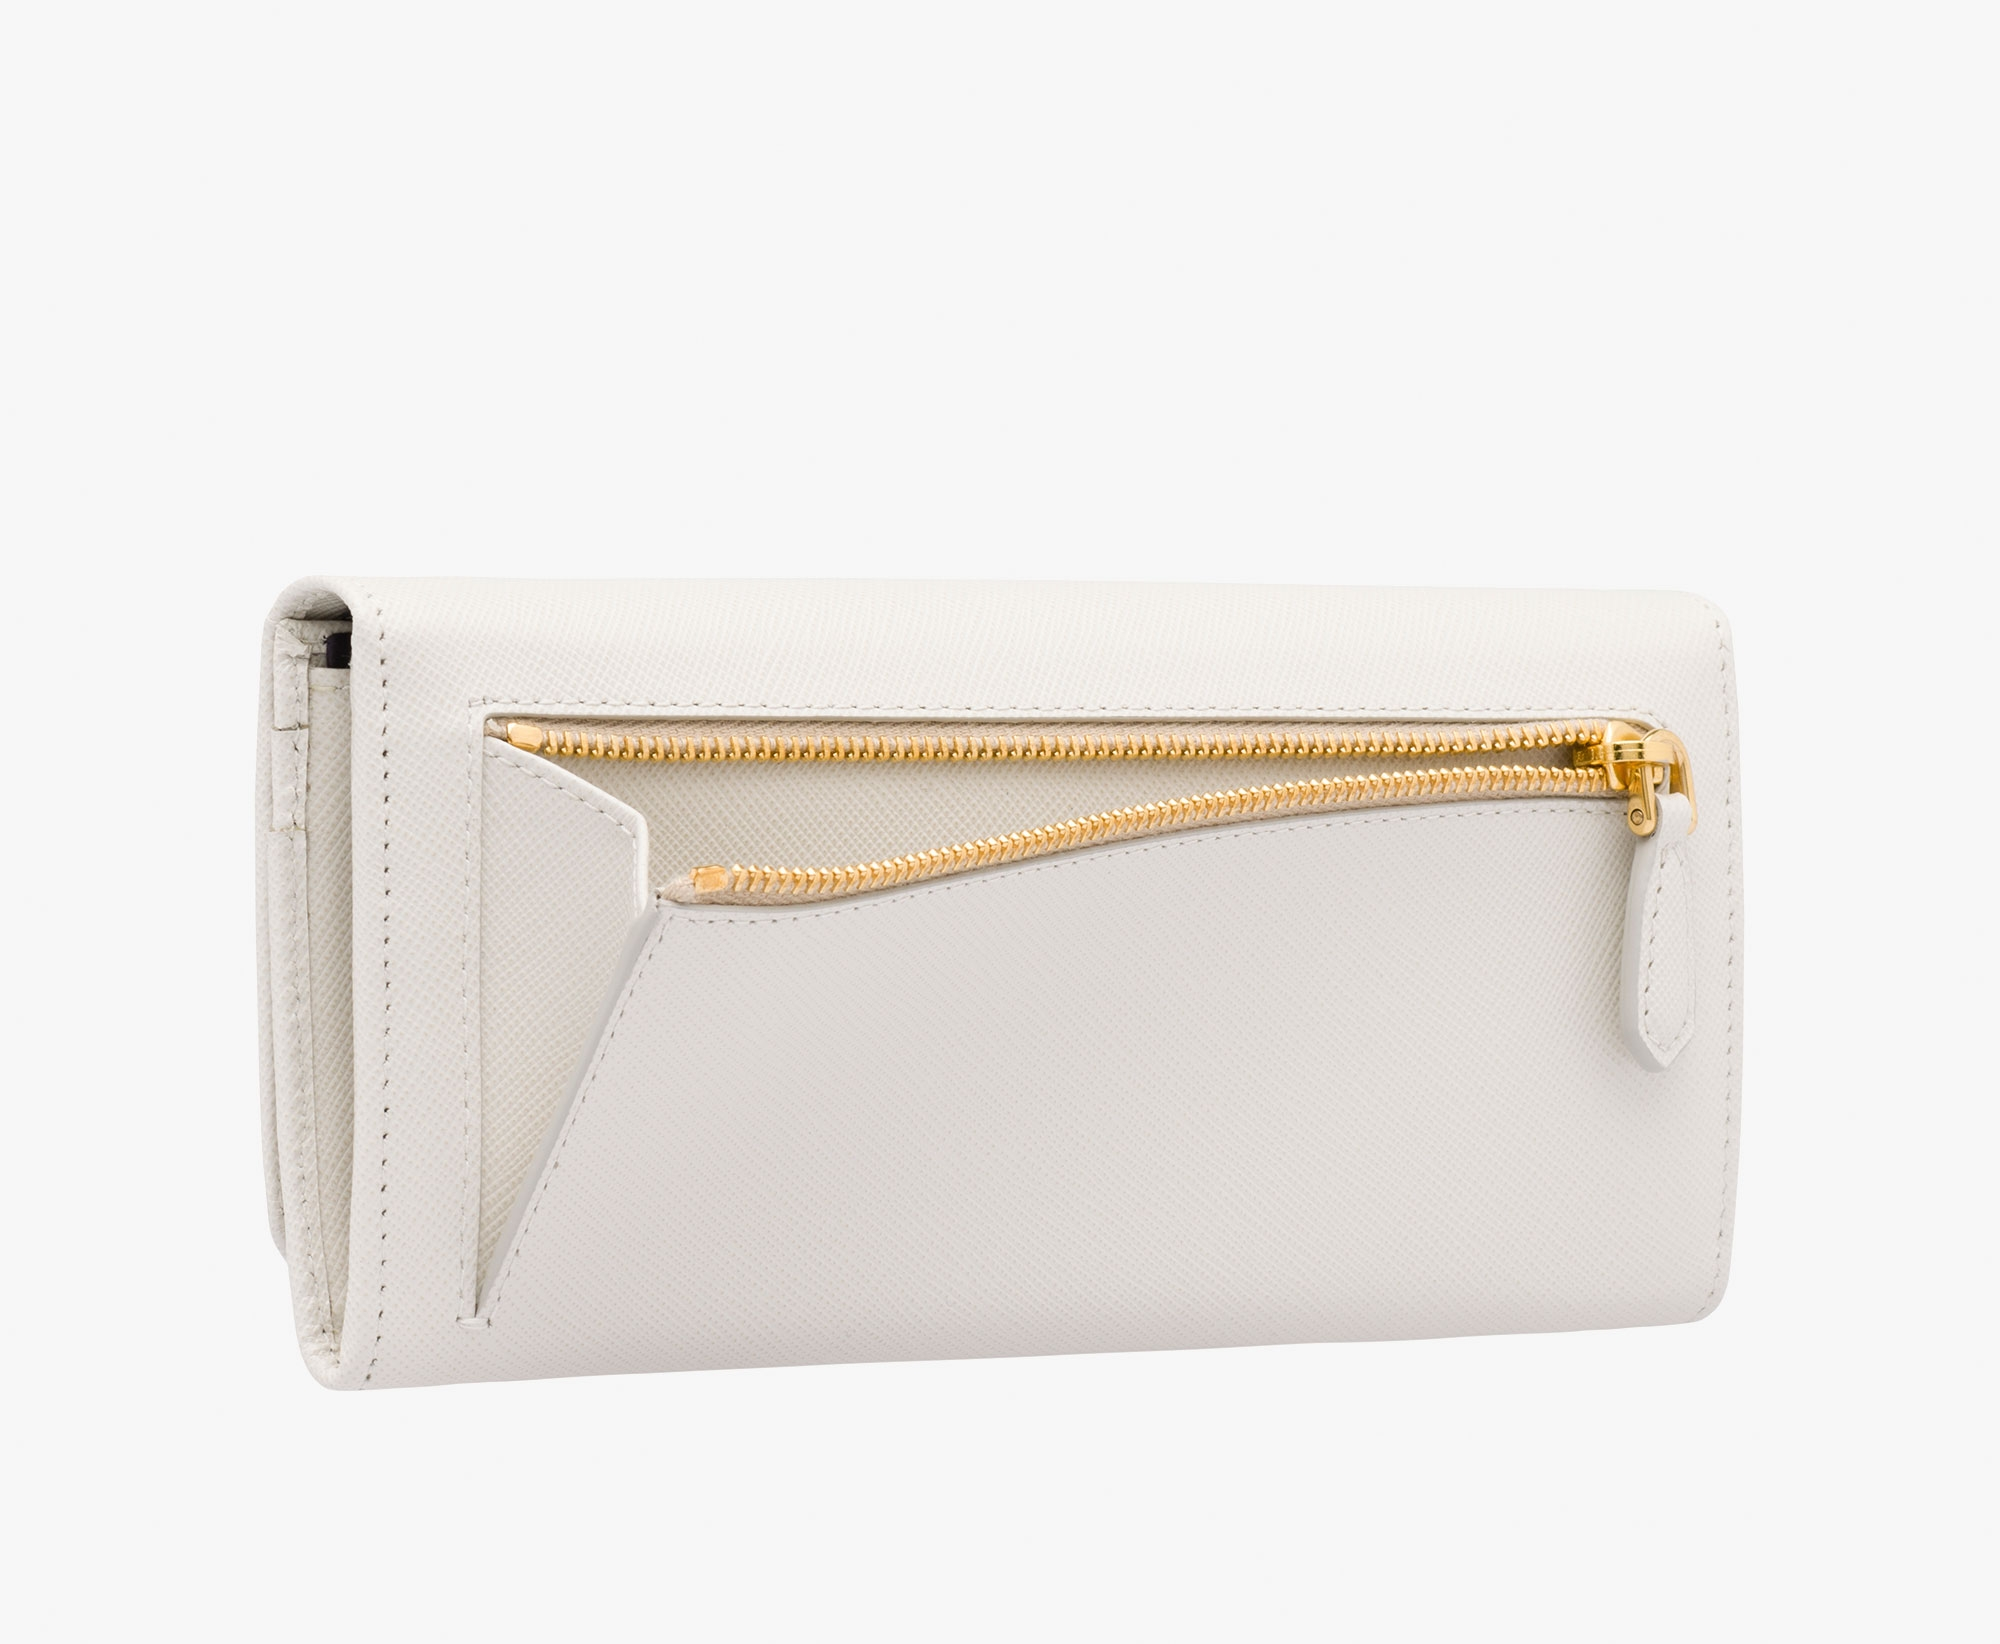 Buy Prada Women Wallet Chalk White [1MH132 QWA F0K74], Price ... - prada wallet chalk white